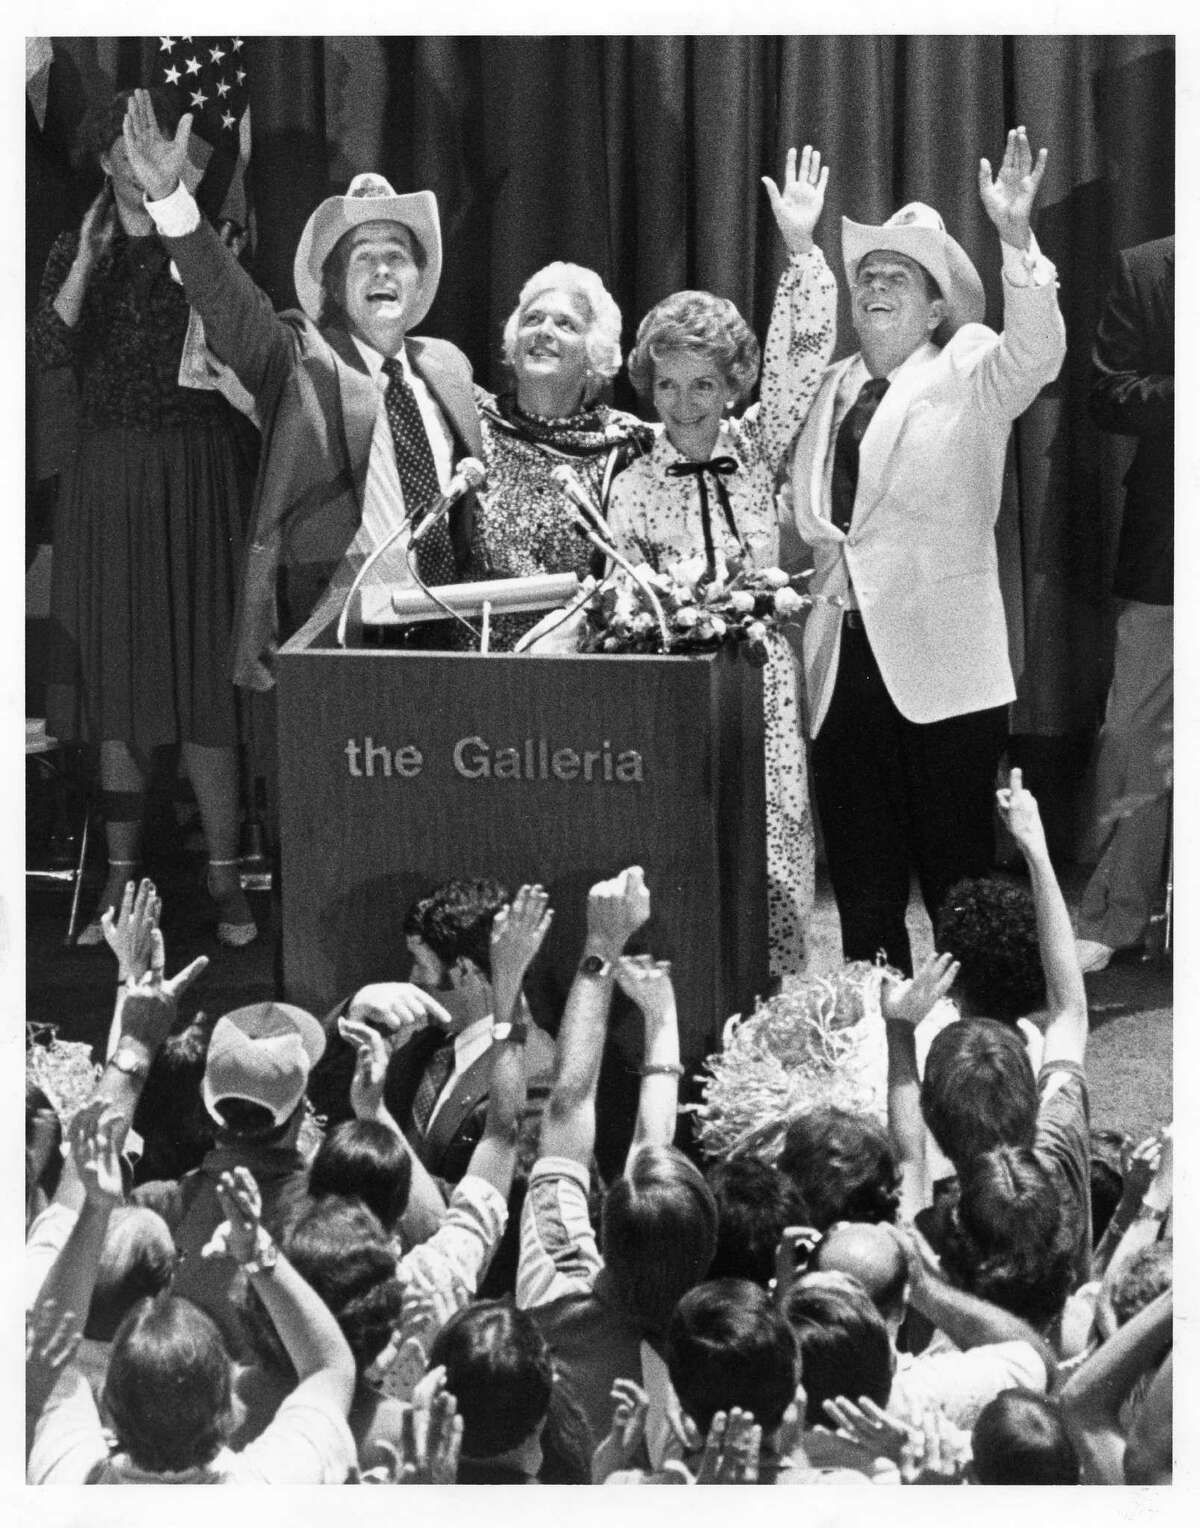 07/19/1980 - The GOP nominees - George Bush and Ronald Reagan and their wives, Barbara and Nancy - make their first post-convention appearance at the Houston Galleria shopping mall.